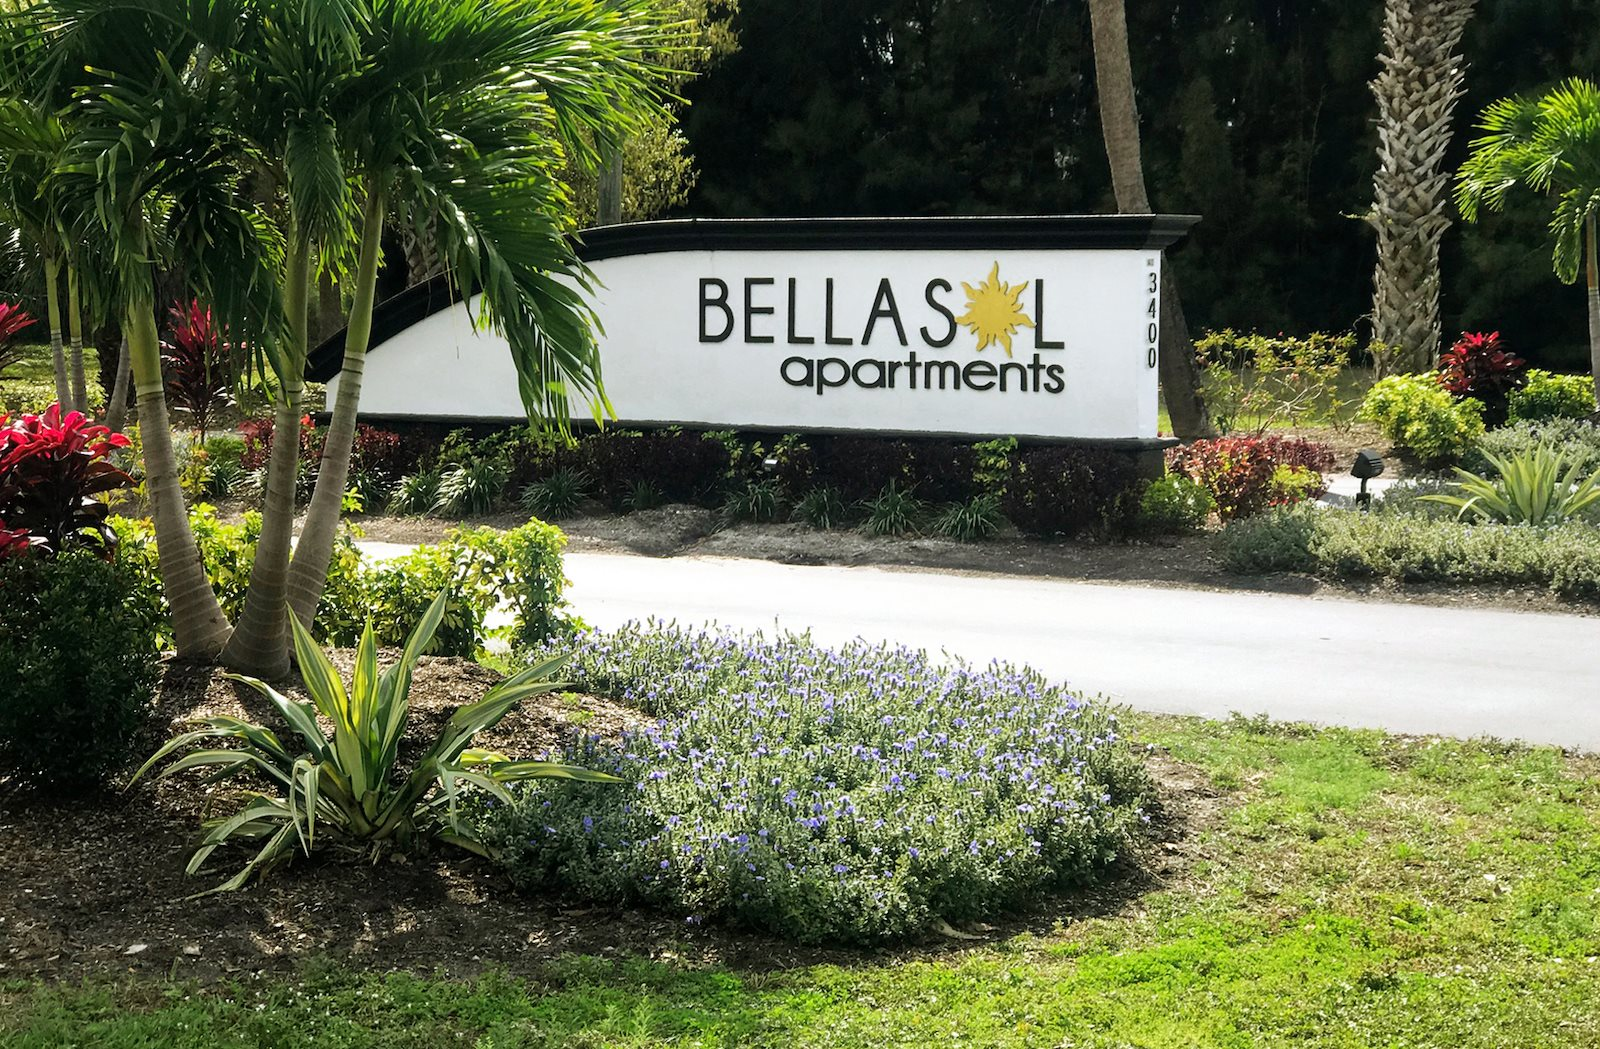 BellaSol Apartments in Sarasota, FL entrance signage